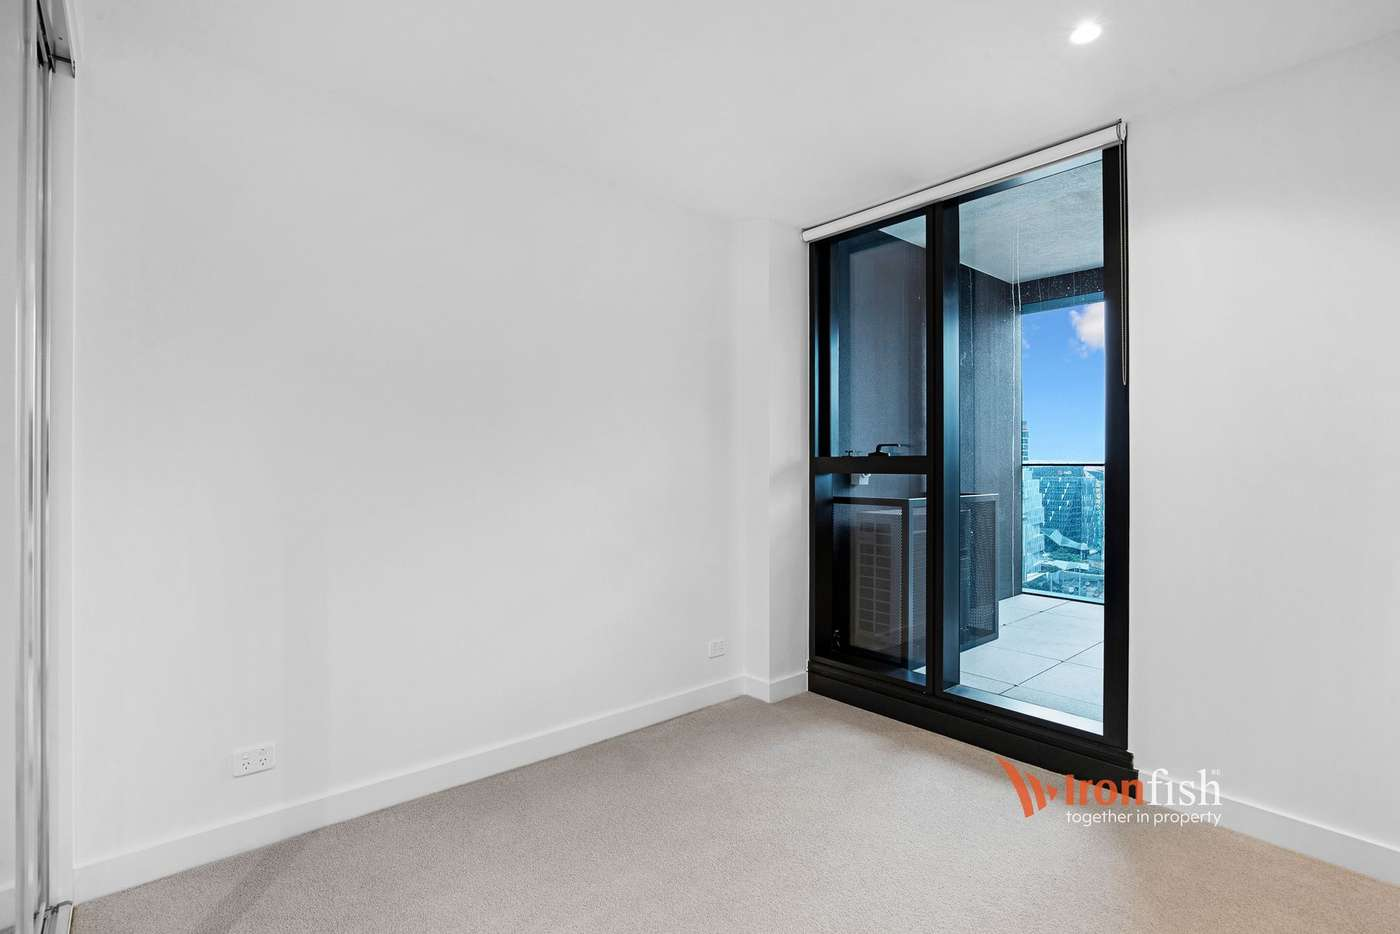 Fifth view of Homely apartment listing, 3218/628 Flinders Street, Melbourne VIC 3000